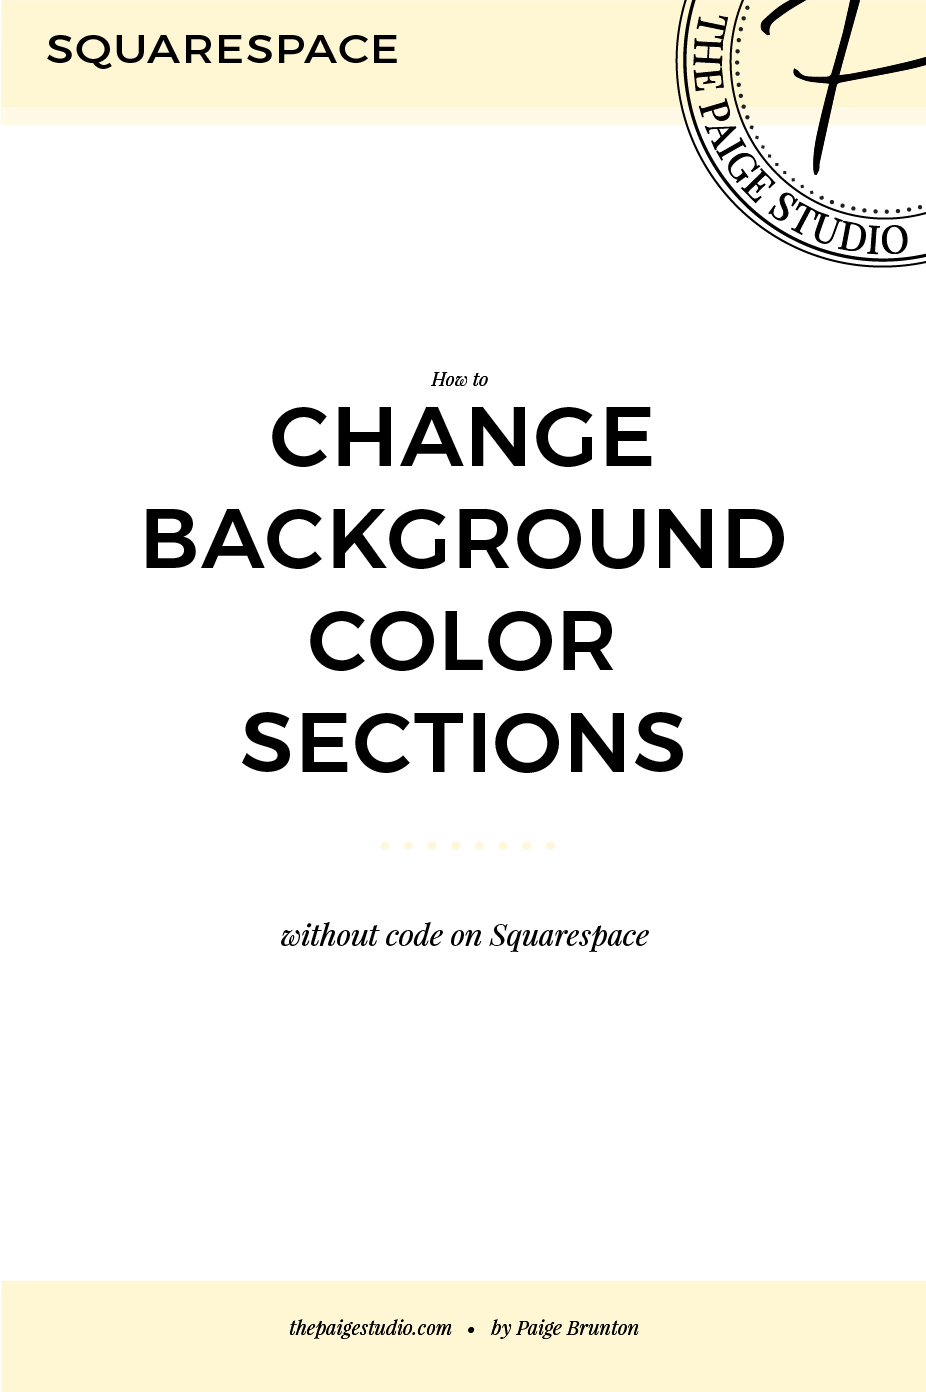 How+to+change+Squarespace+background+color+section+without+code.png